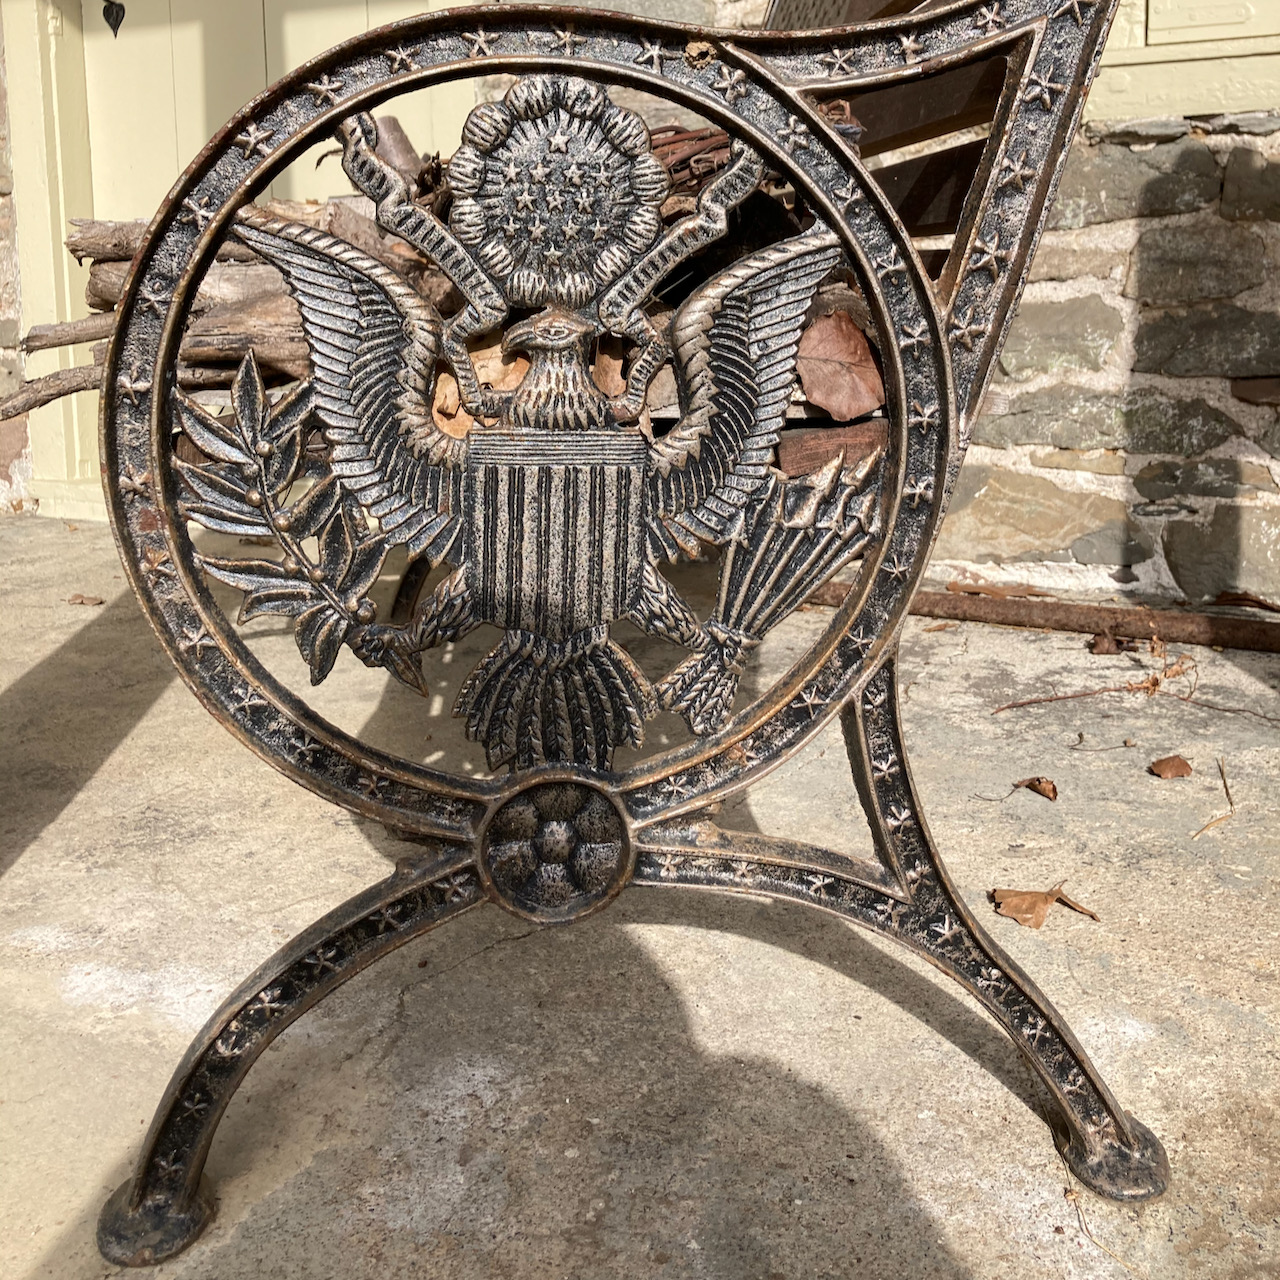 Wrought iron bench with seal of the President on the side.